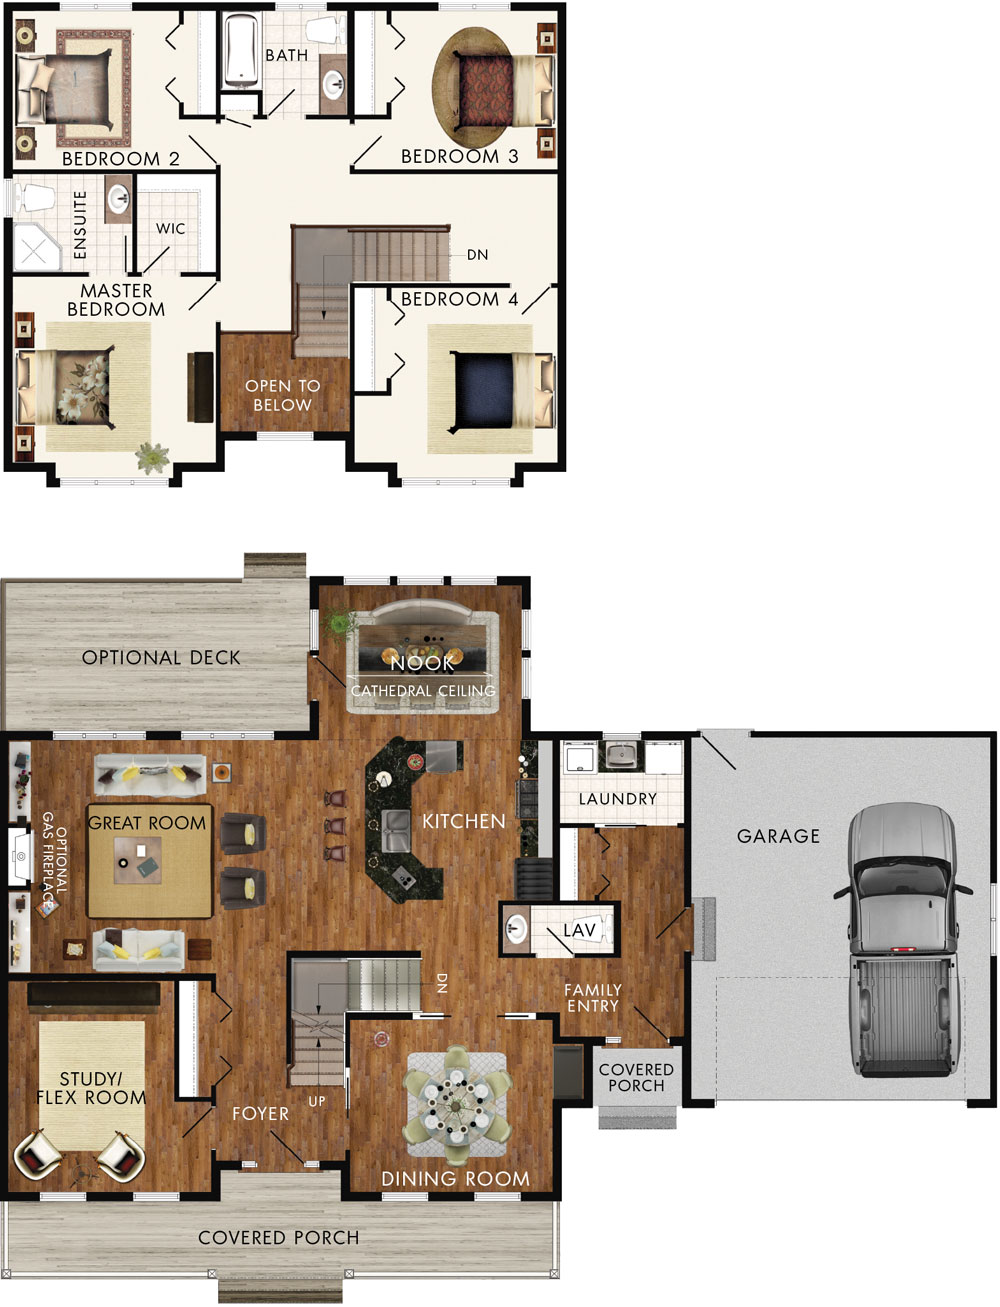 Beaver homes and cottages delacombe for Home hardware floor plans